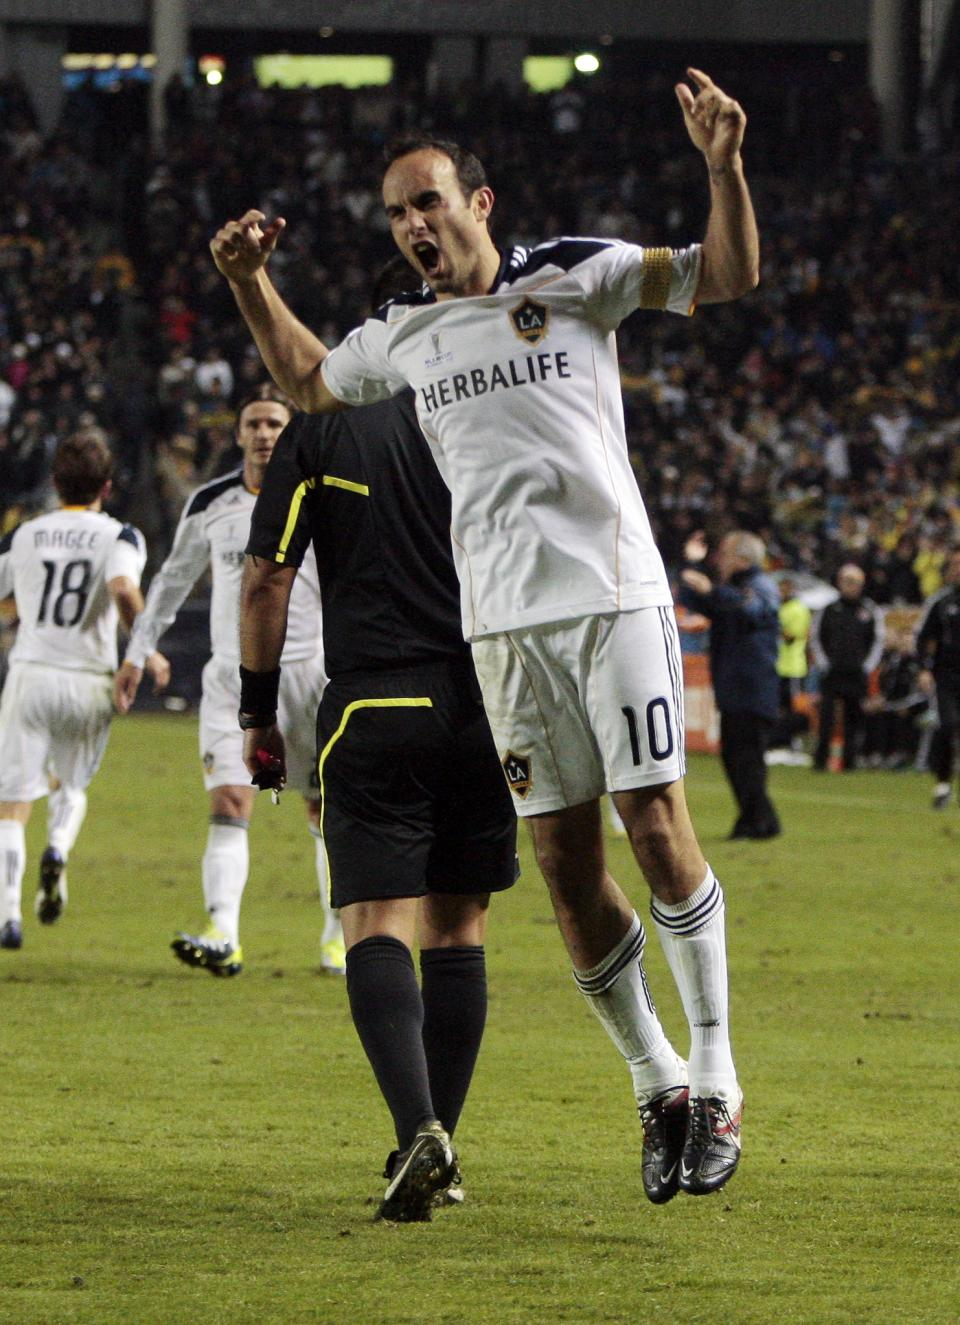 Los Angeles Galaxy forward Landon Donovan (10) celebrates his goal during the second half of the MLS Cup championship soccer match against the Houston Dynamo, Sunday, Nov. 20, 2011, in Carson, Calif. The Galaxy won 1-0. (AP Photo/Bret Hartman)